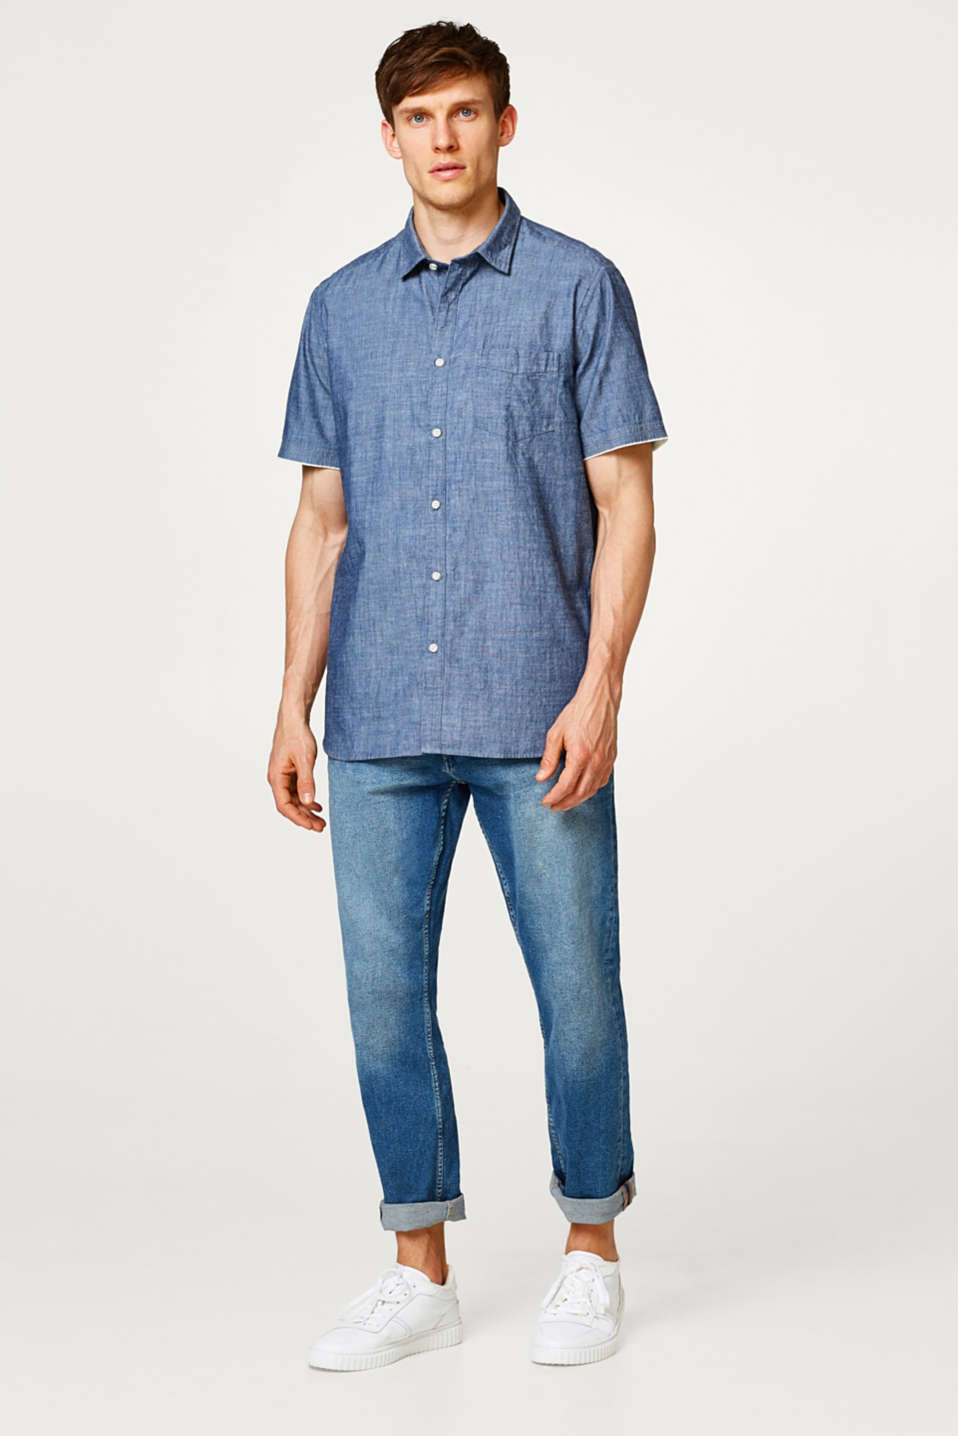 Short sleeve shirt made of cotton chambray